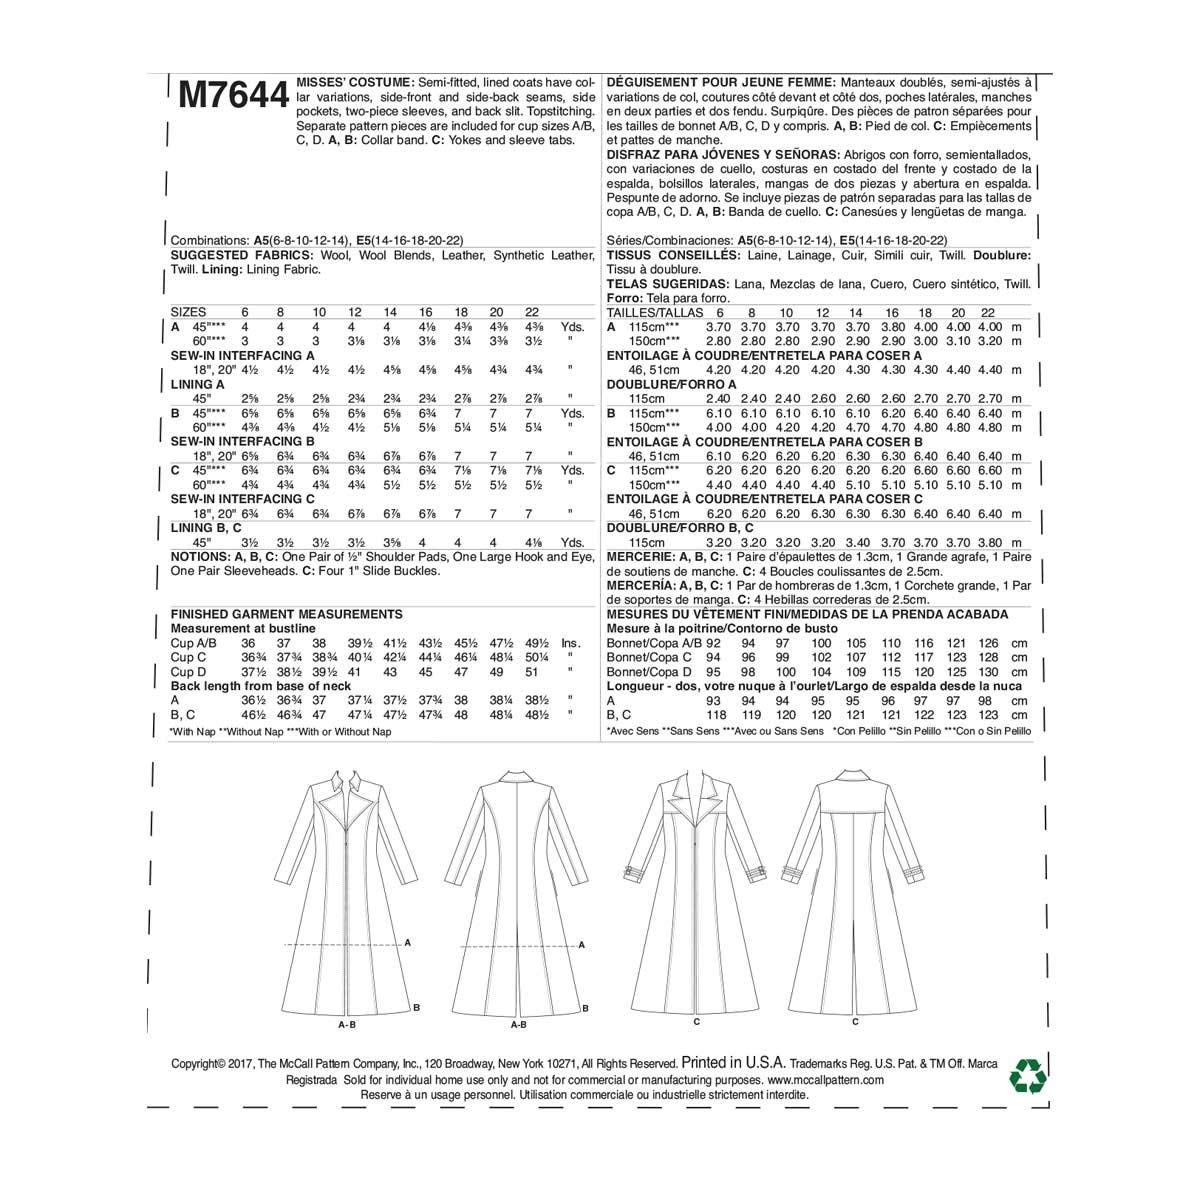 Amazon.com: McCalls Patterns M7644E50 Leather Jacket Cosplay Costume Sewing Pattern for Women by Yaya Han Sizes 14-22: Arts, Crafts & Sewing